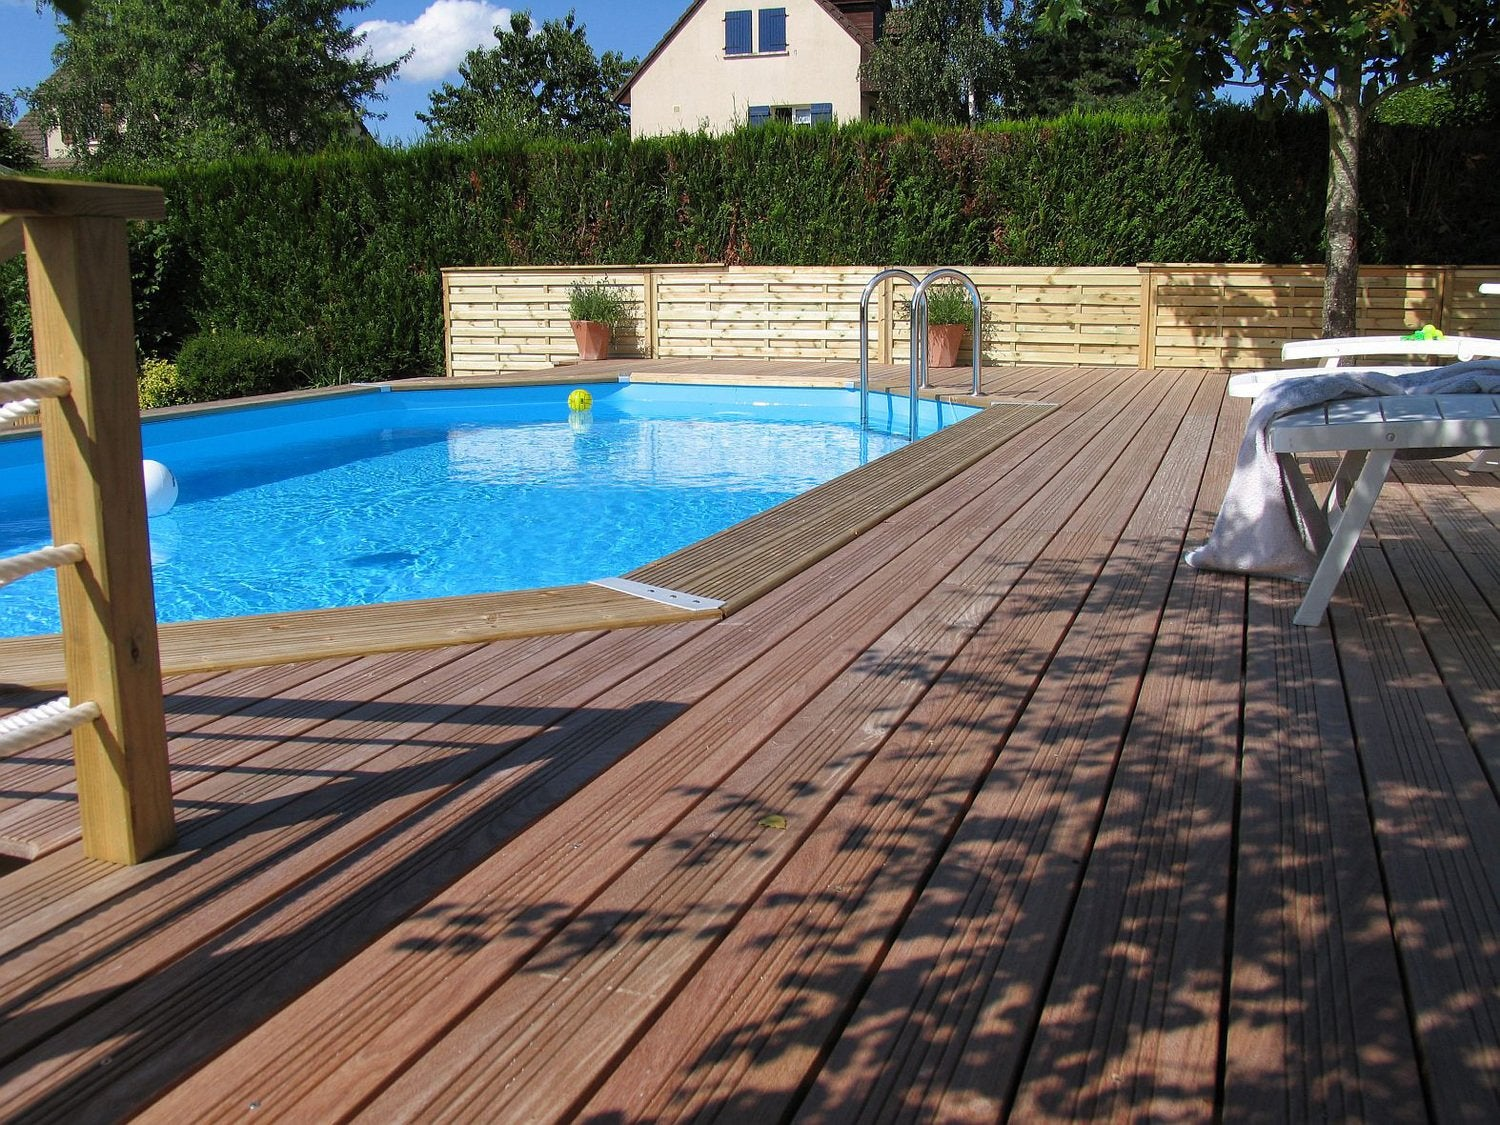 Piscine bois leroy merlin piscine enterr e leroy merlin for Piscine semi enterre